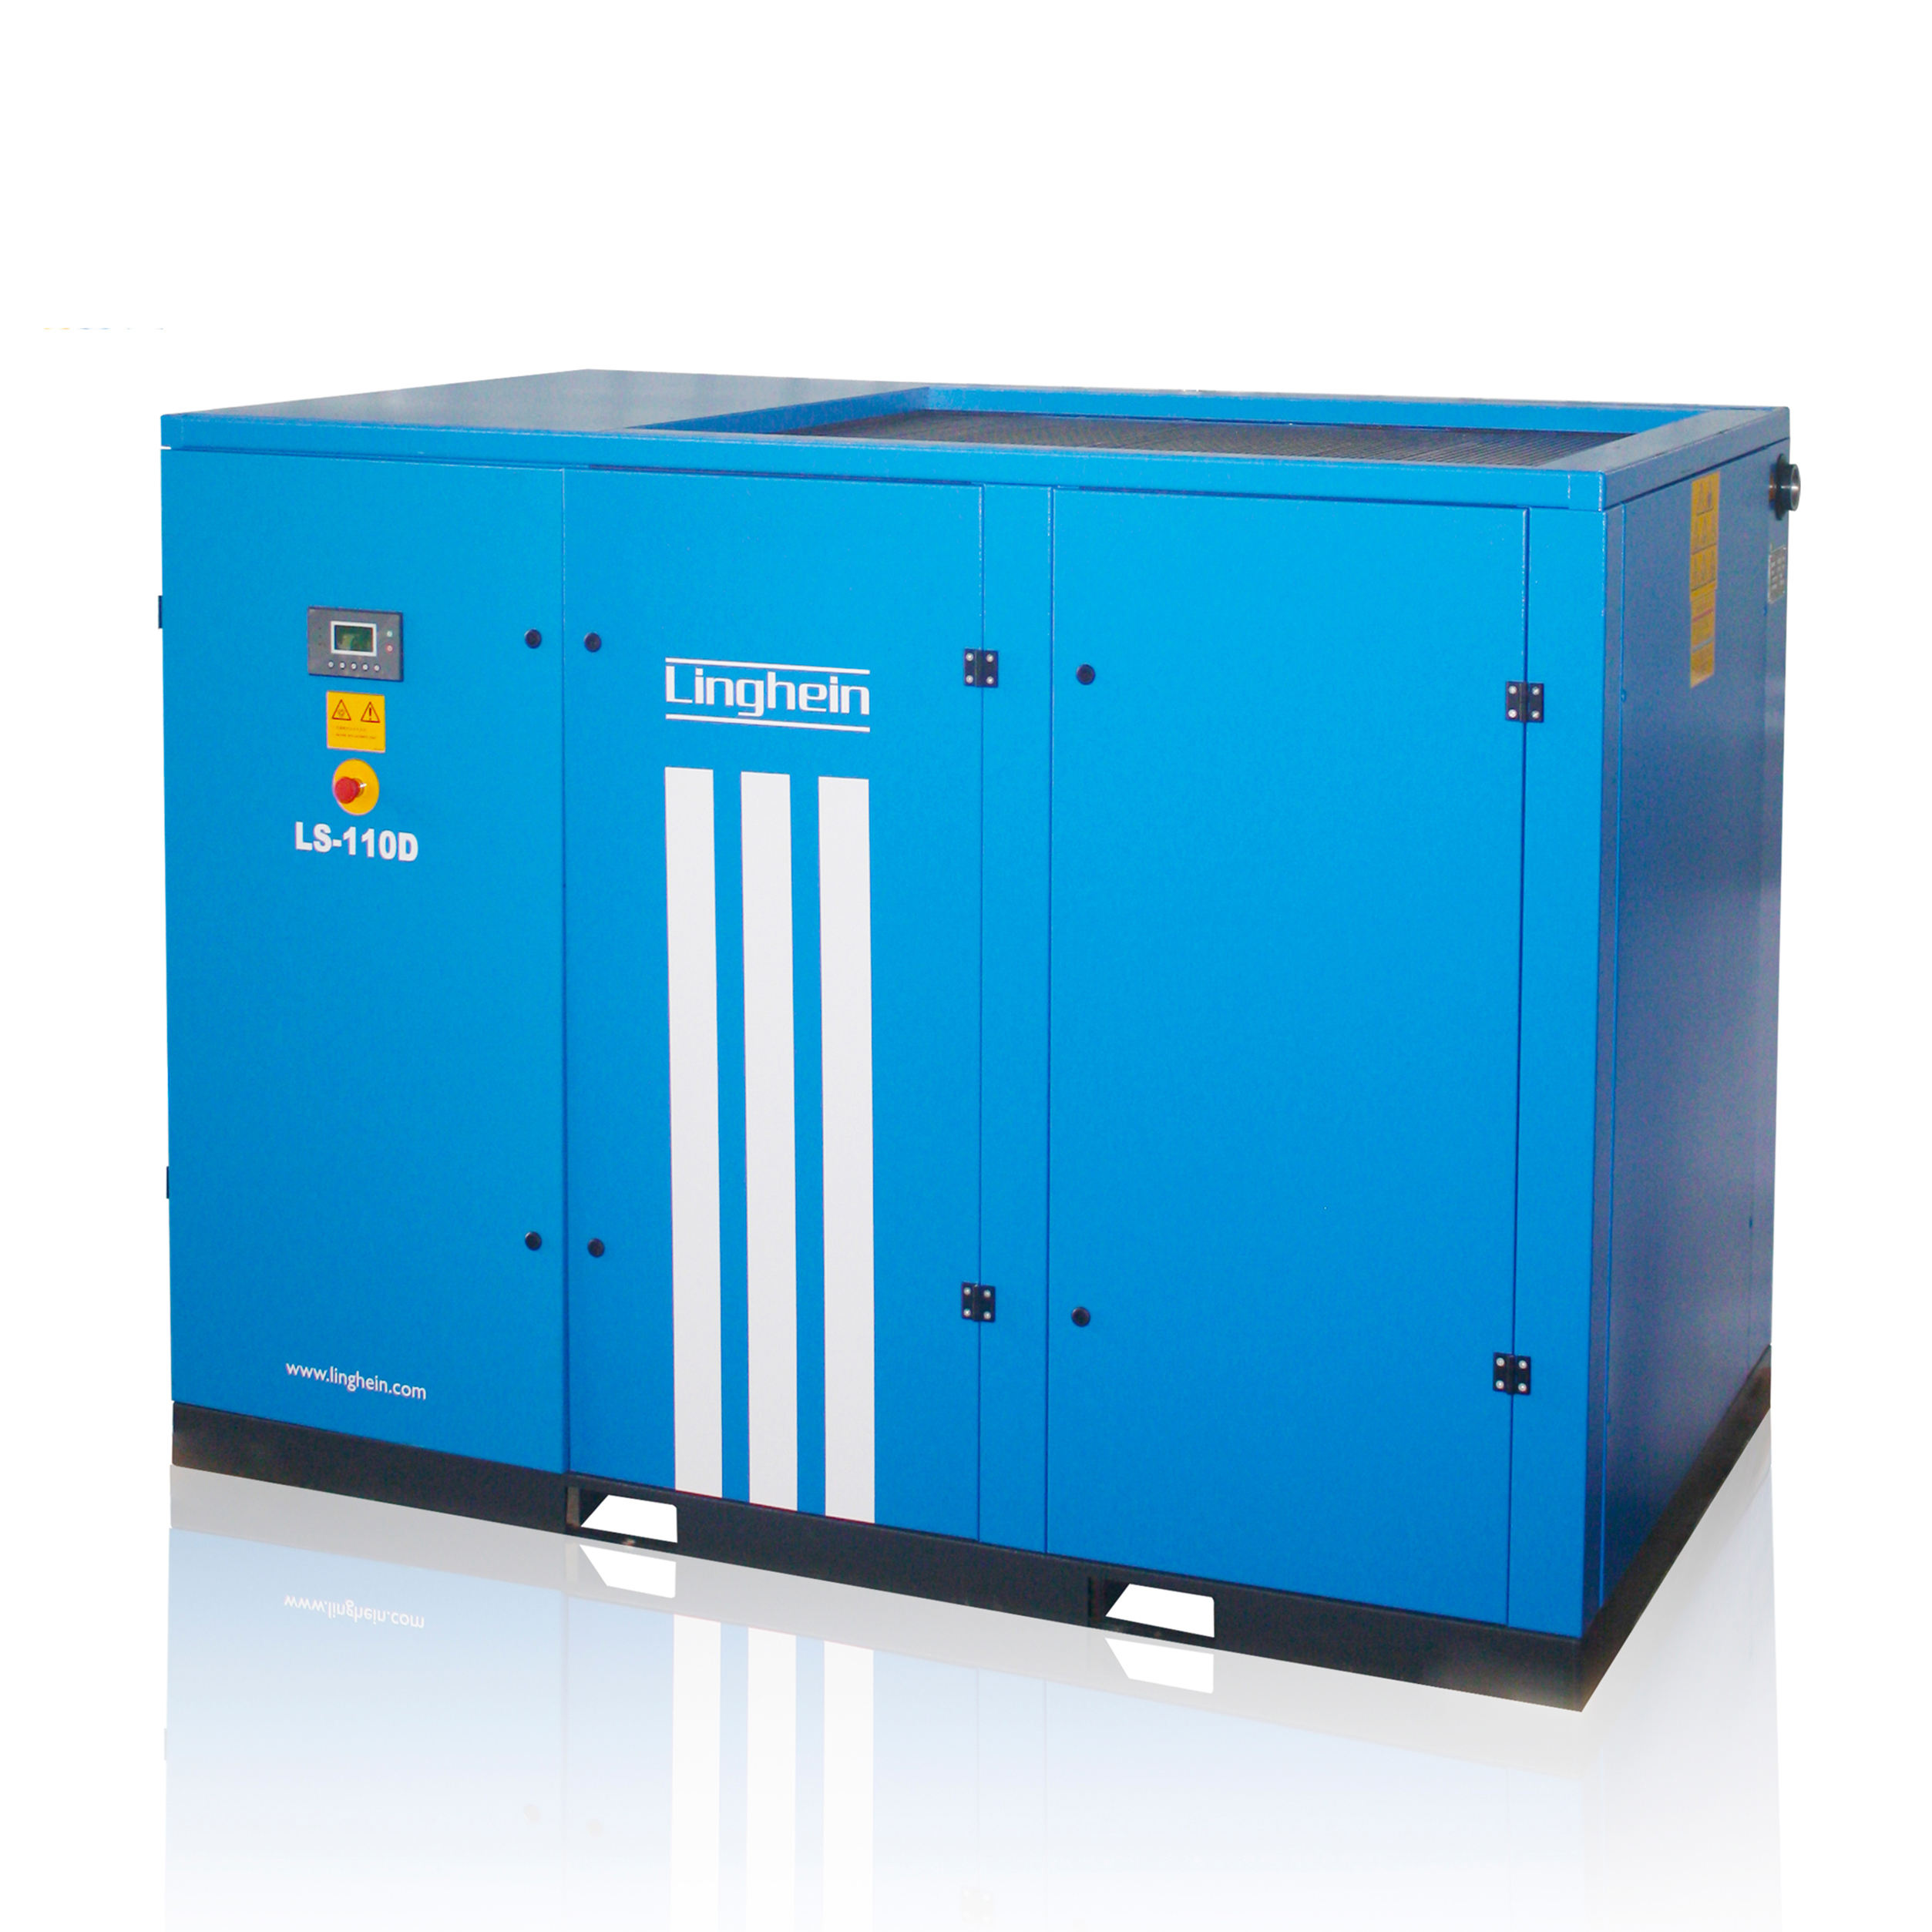 Nuovo-arrivo LINGHEIN 150HP/110KW aria compressore a vite sotto <span class=keywords><strong>gruppo</strong></span> AC, compressori per la vendita, aria compressori